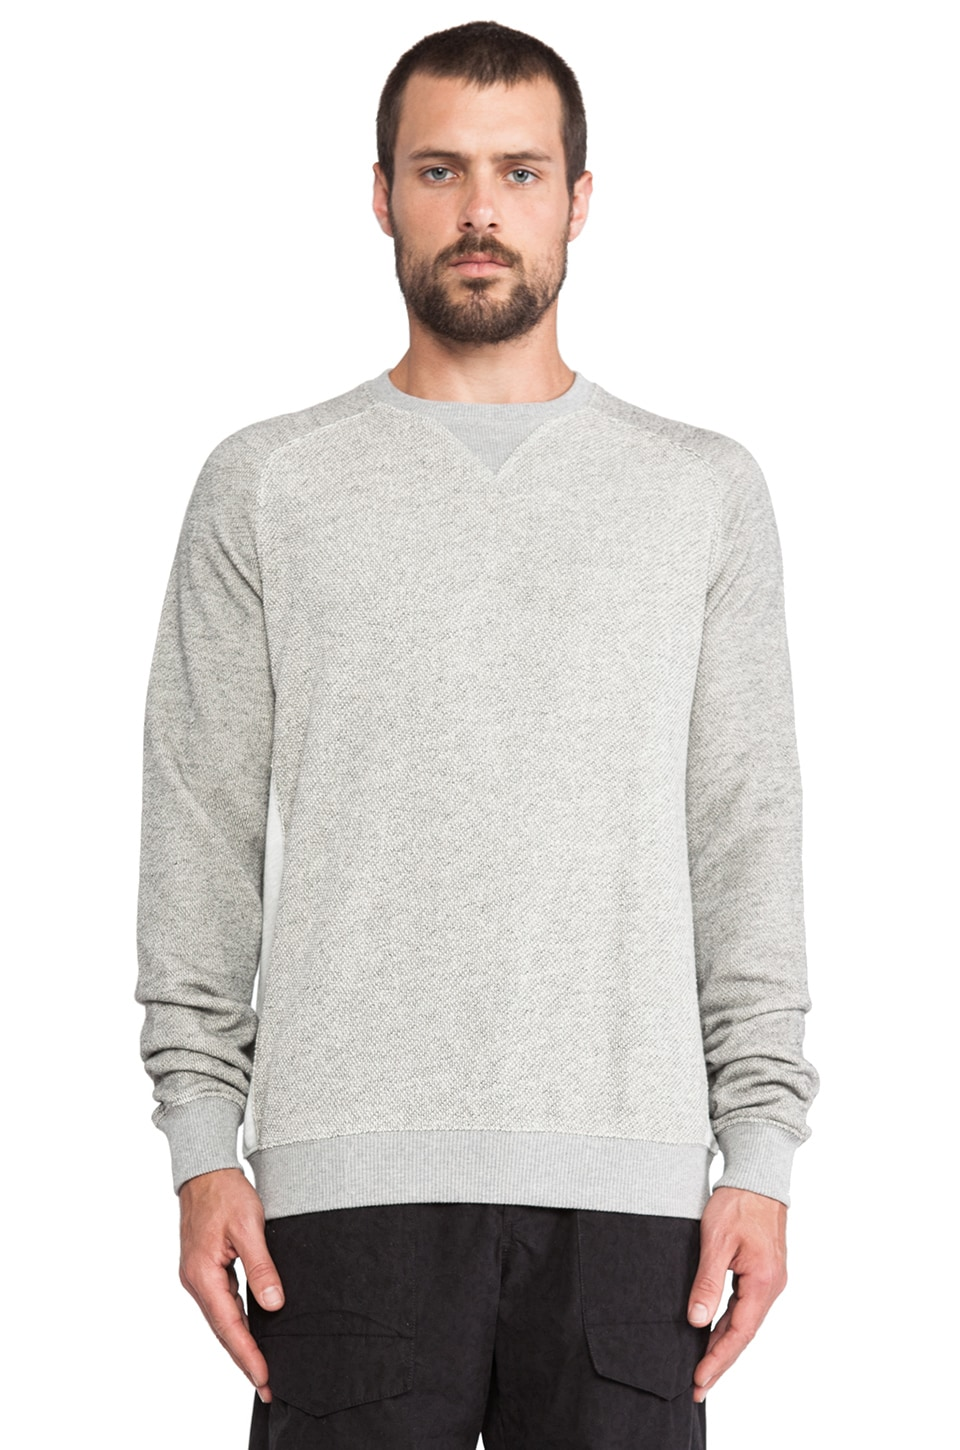 Shades of Grey by Micah Cohen Contrast Panel Sweatshirt in Light Heather Grey